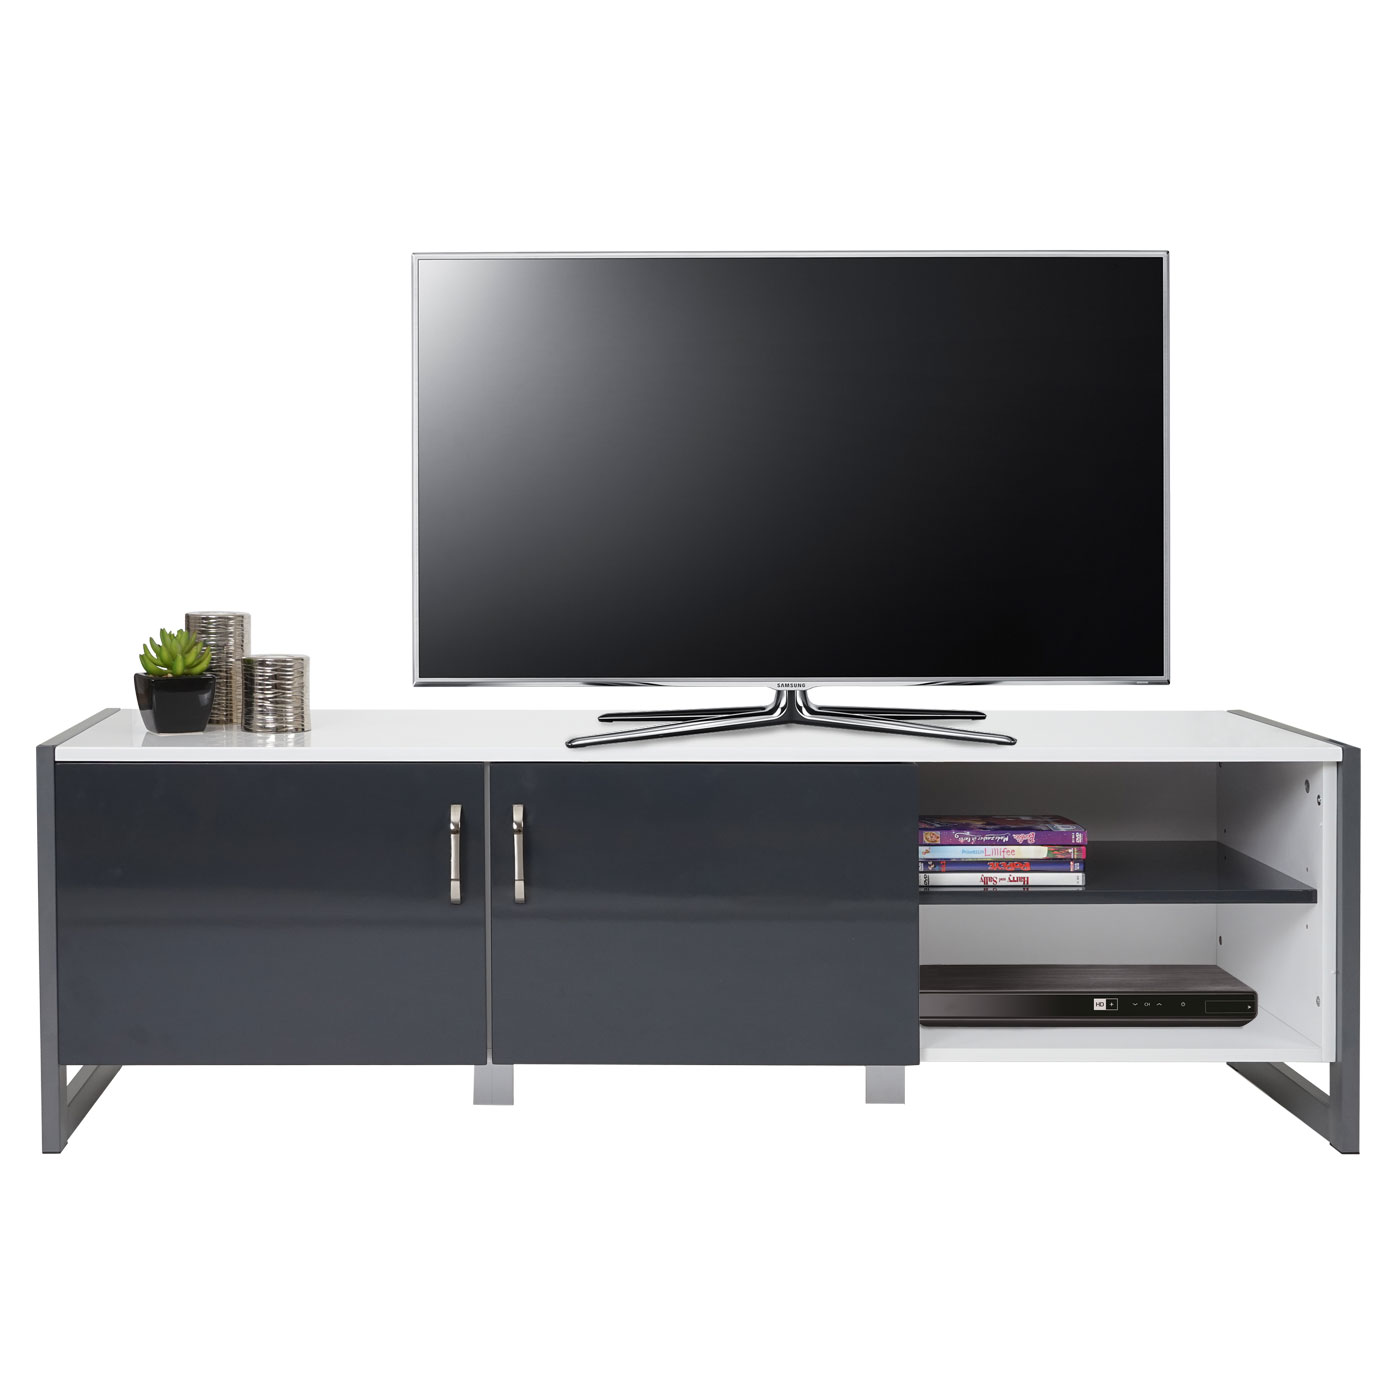 tv rack hwc b27 fernsehtisch lowboard hochglanz 140x45x40cm wei grau. Black Bedroom Furniture Sets. Home Design Ideas